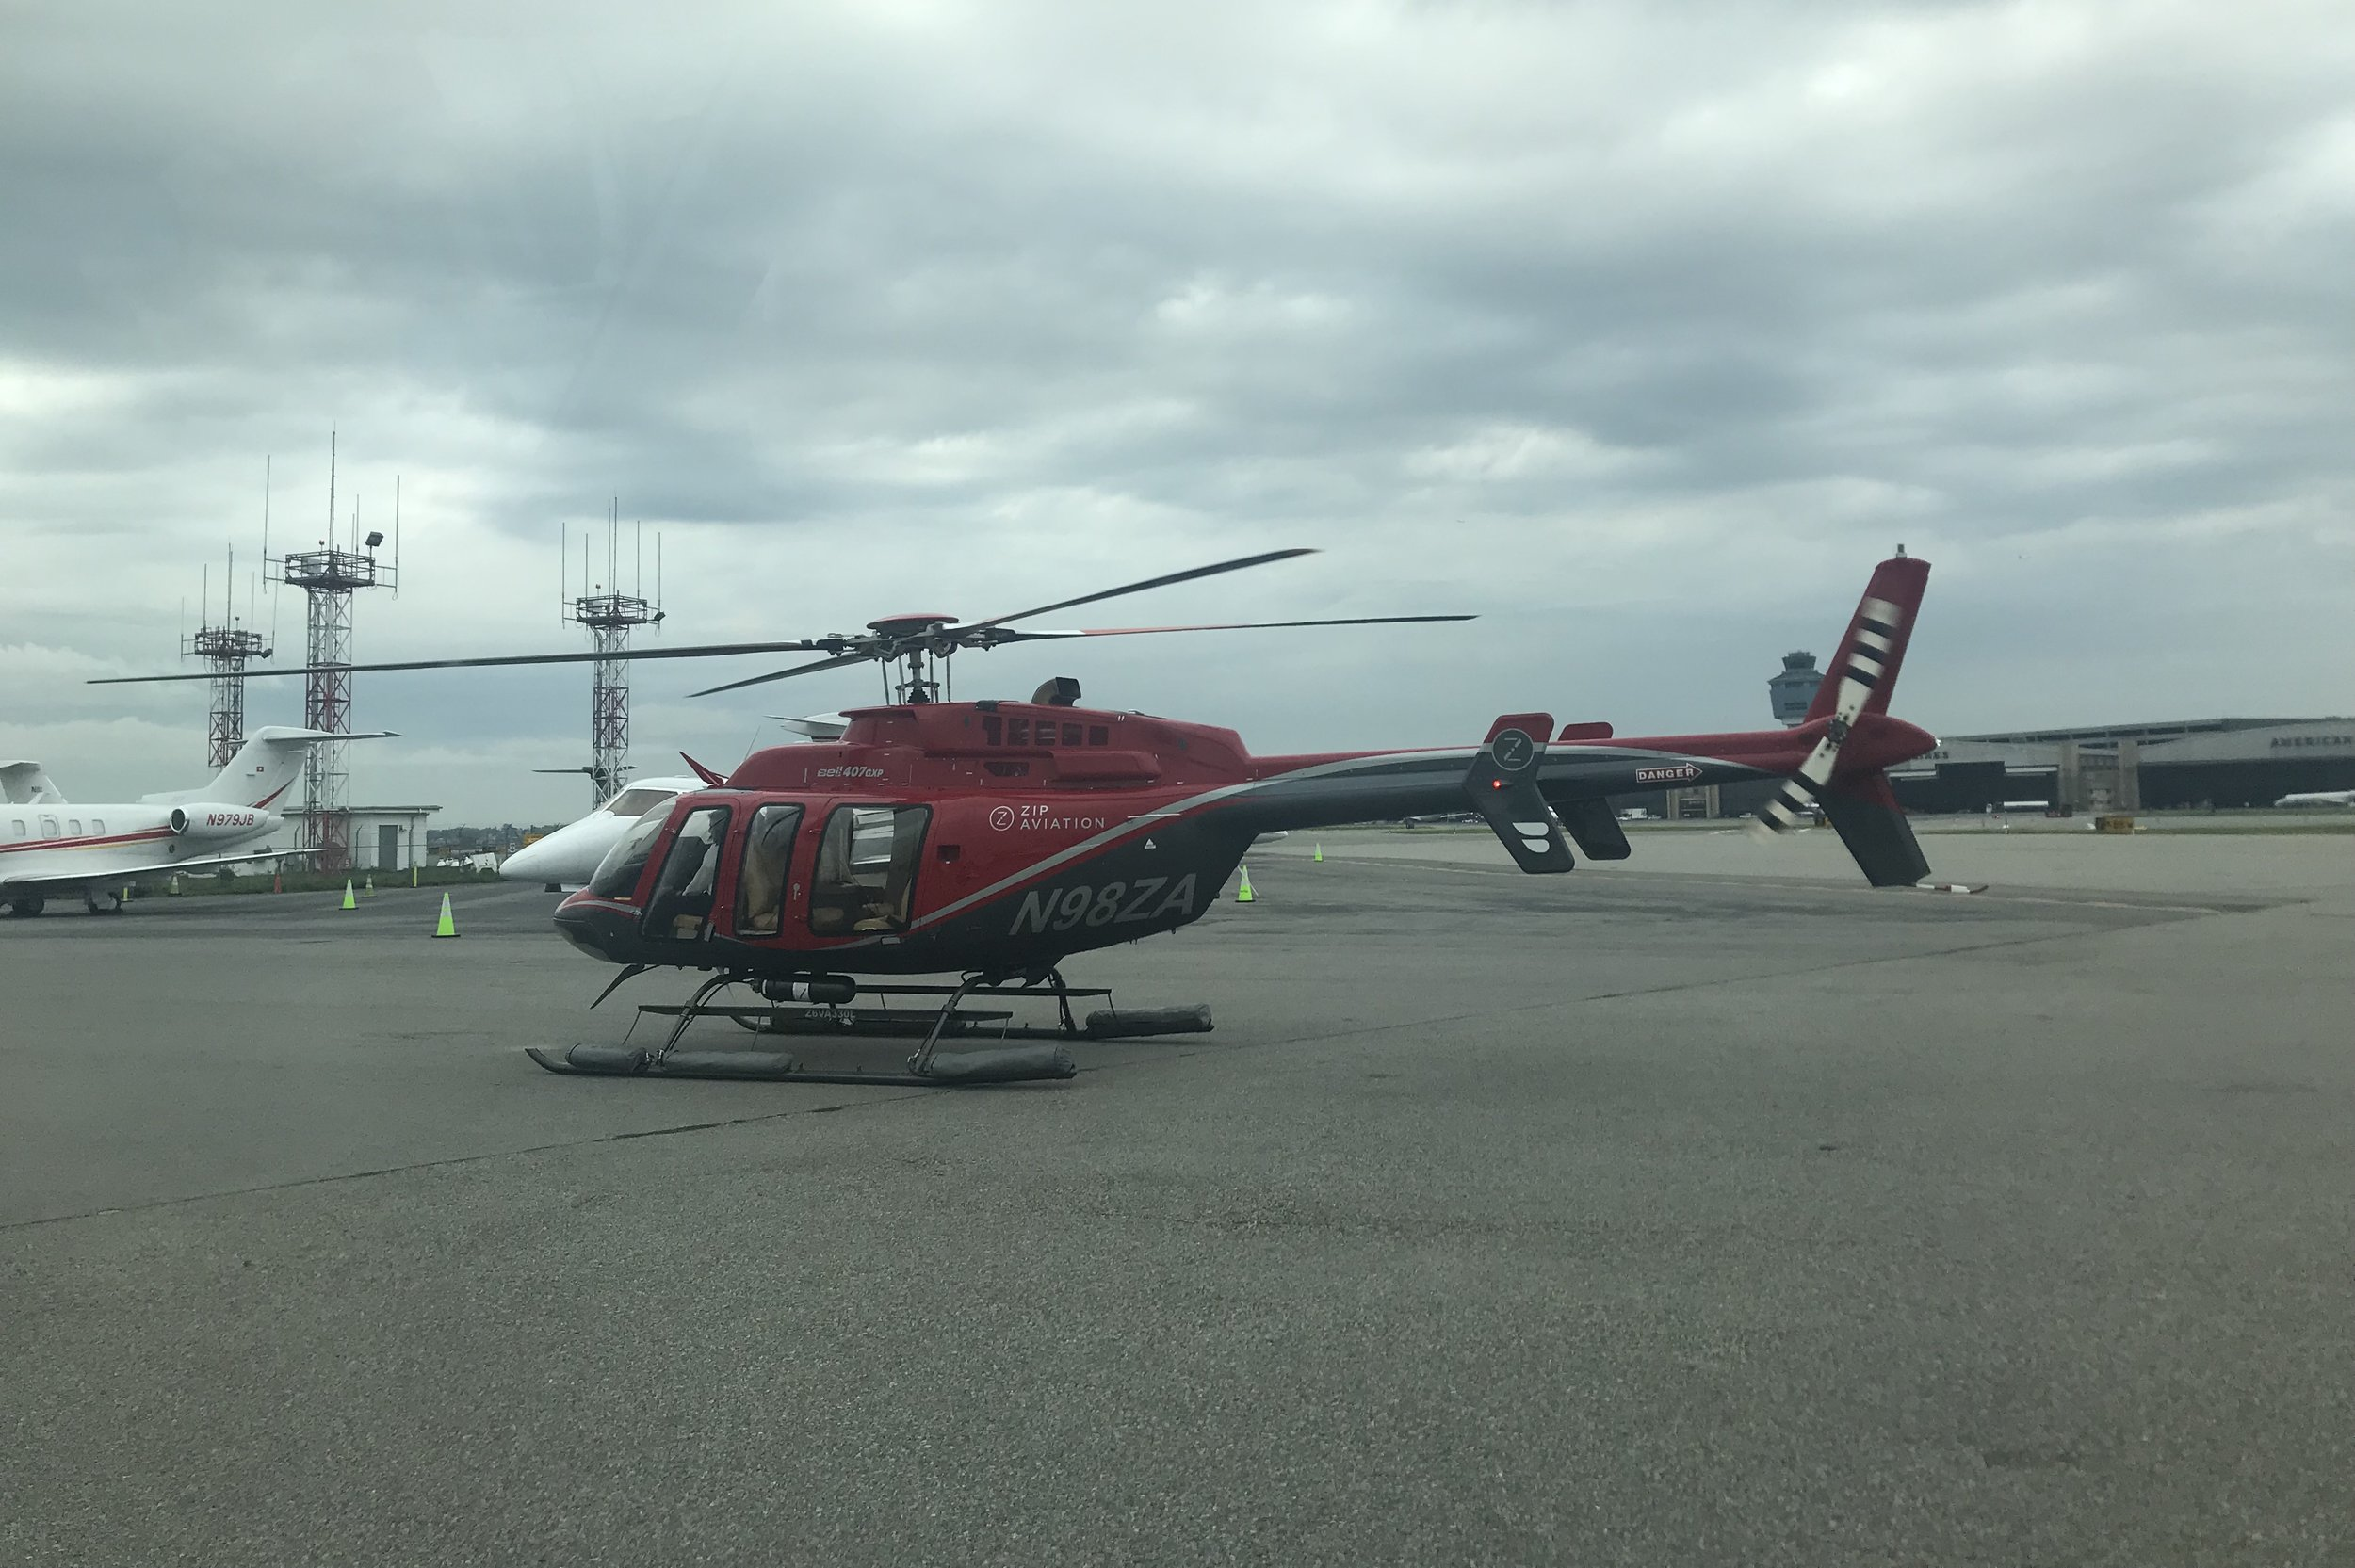 BLADE Helicopters – Our ride to Manhattan!